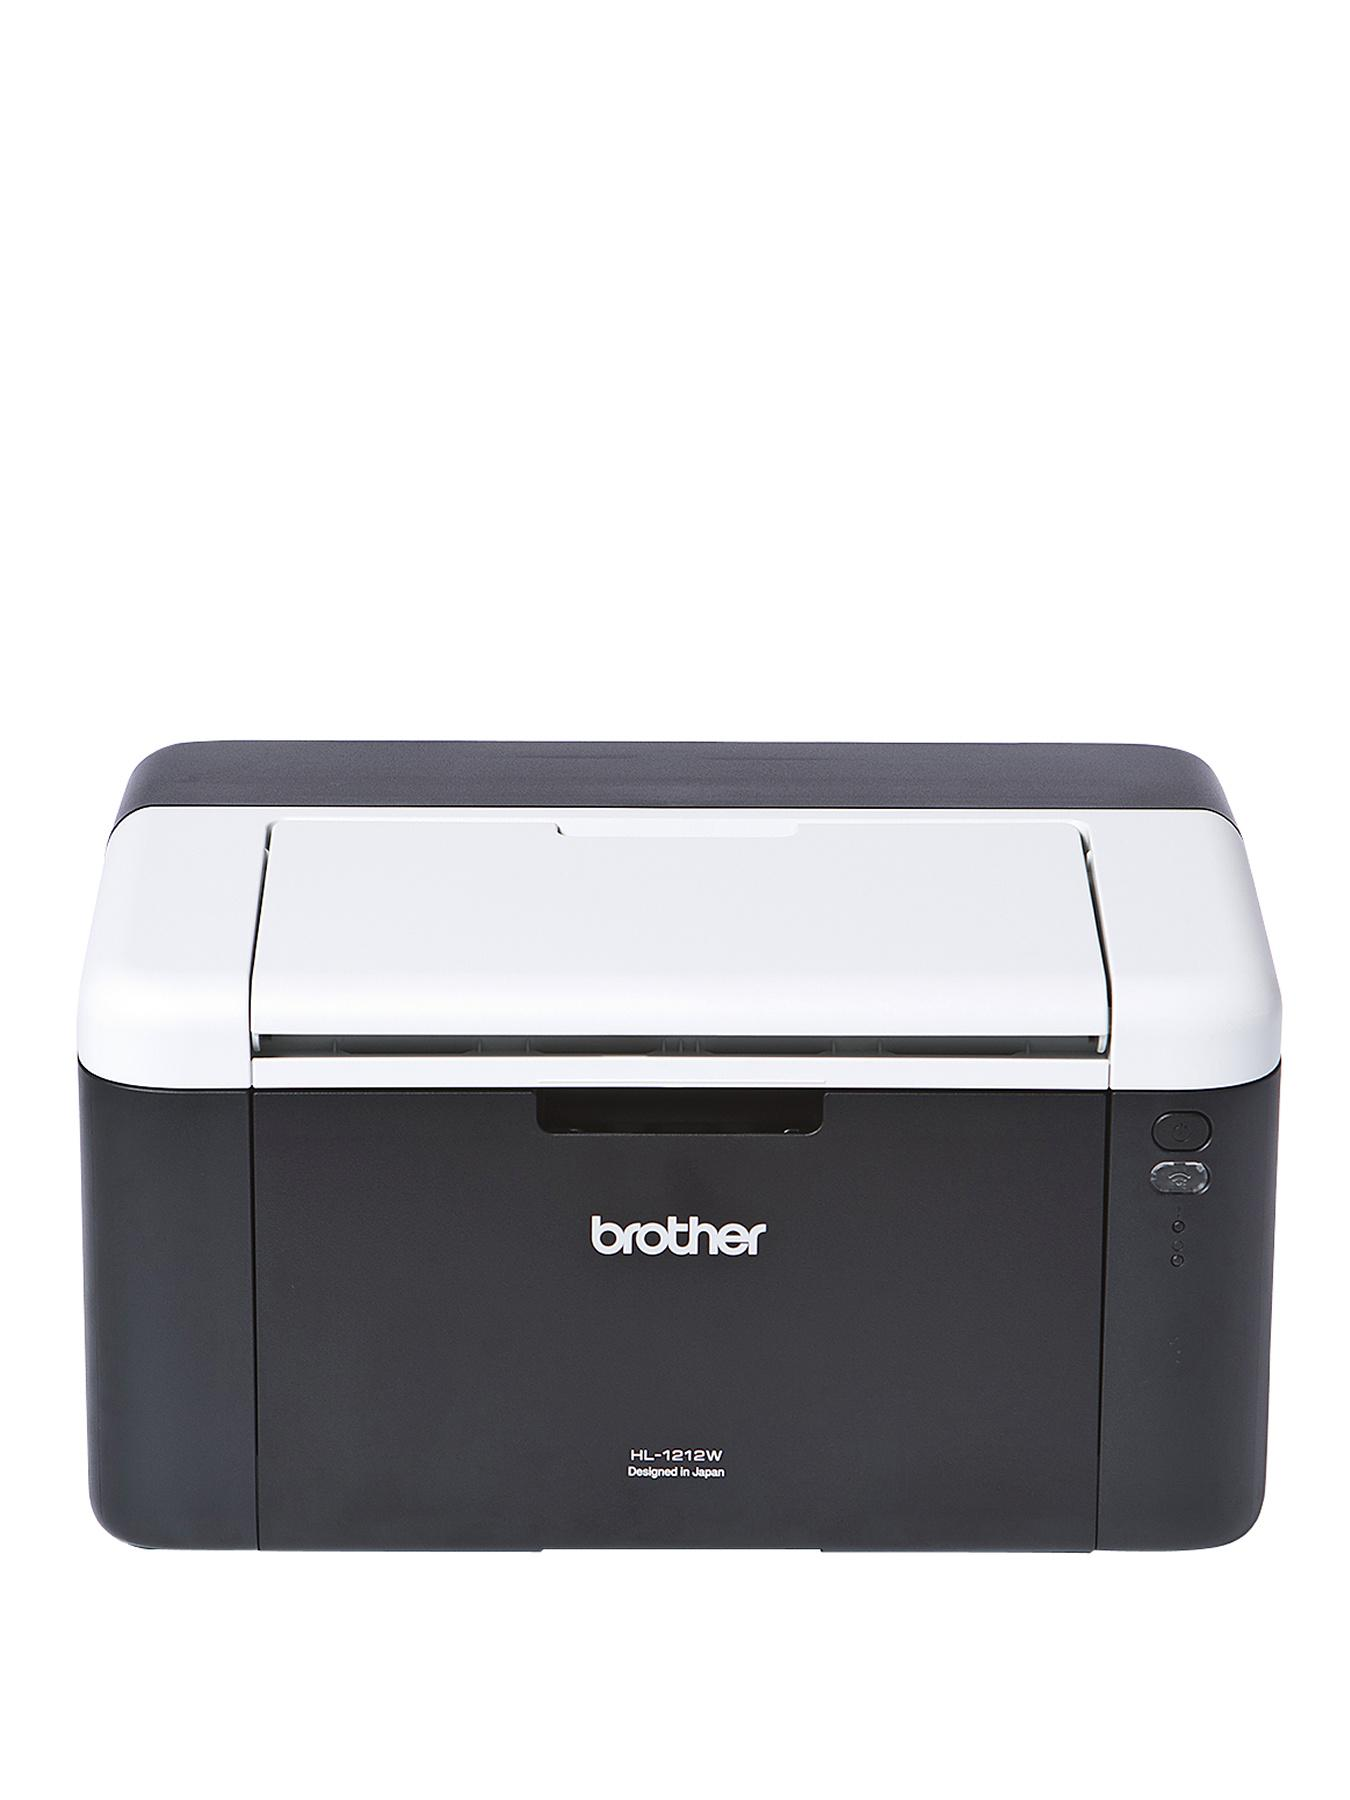 Brother HL-1212W Compact Mono Laser Printer with Wi-Fi - Black White